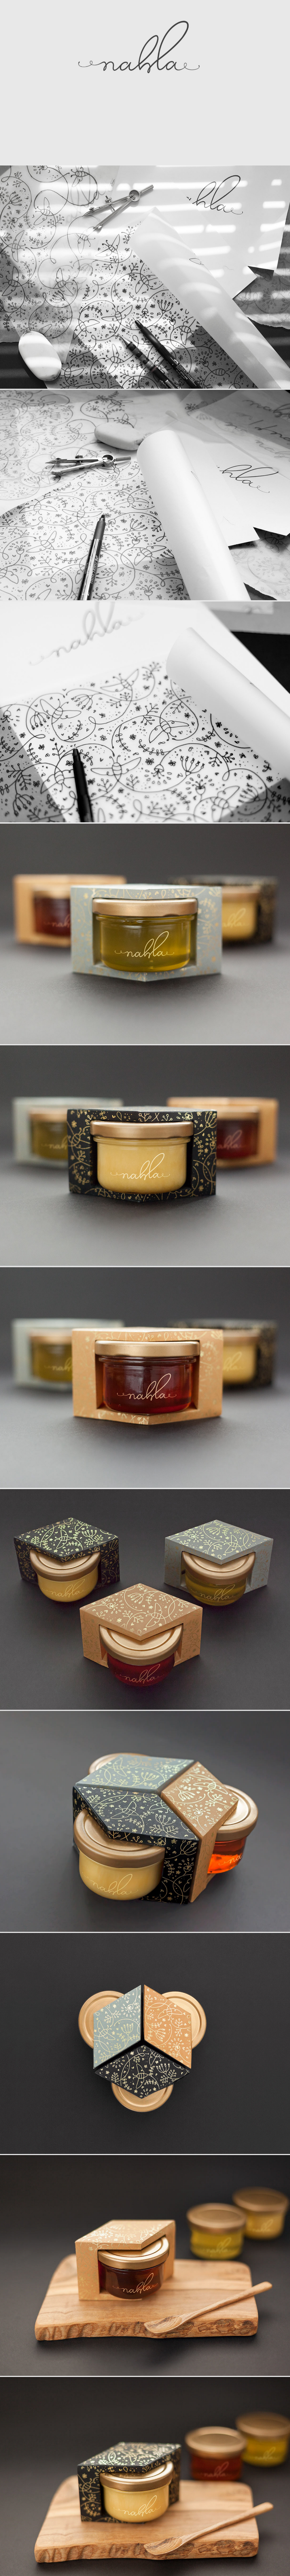 Branding,Photography,Packaging